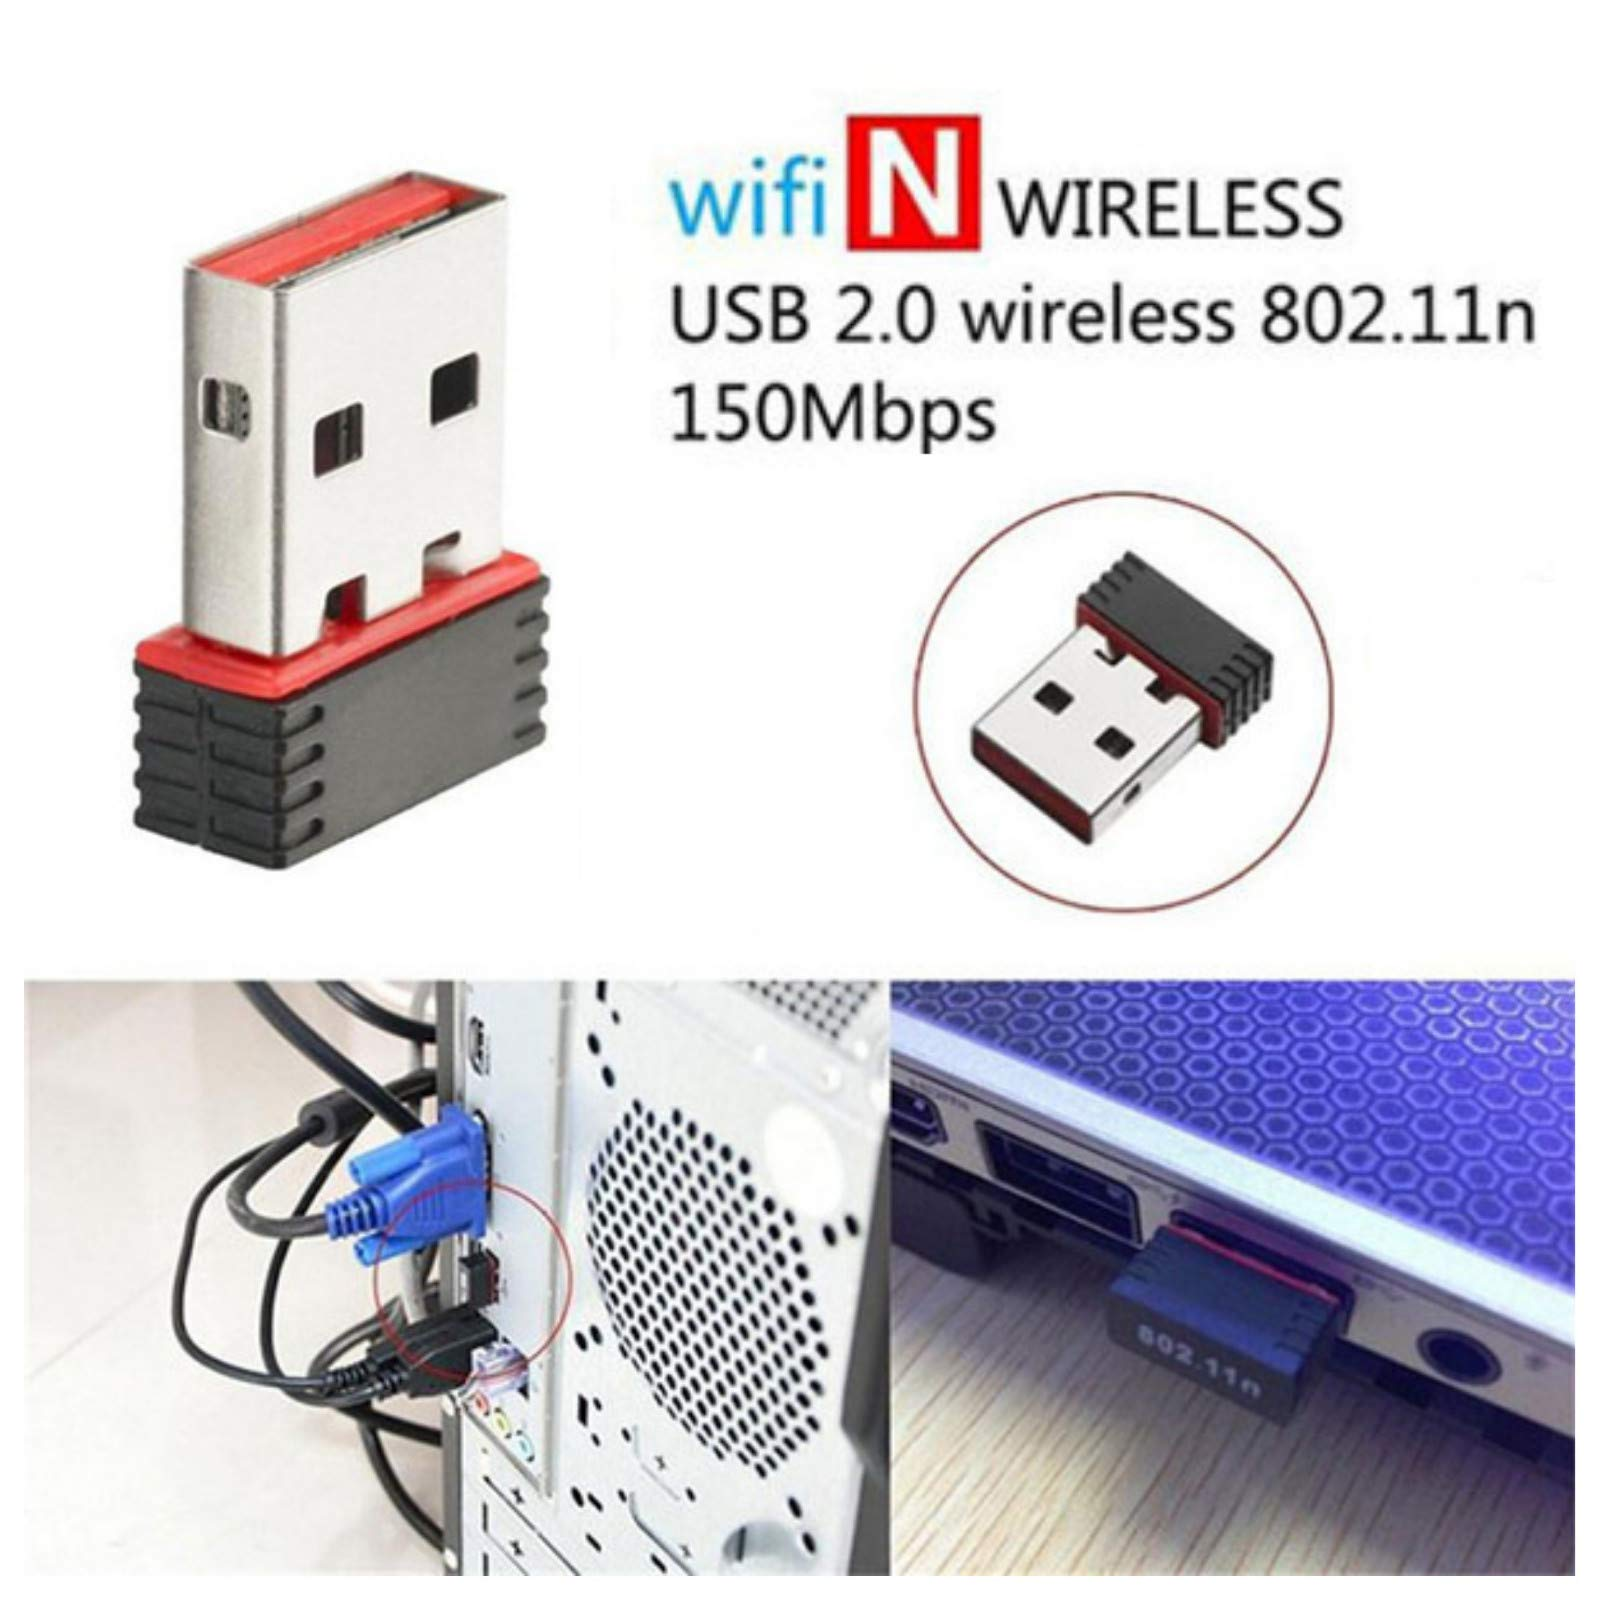 USB Adapter Mini USB 2.0 802.11n 150Mbps Wireless WiFi Network Adapter Card for PC Windows Linux (Black)